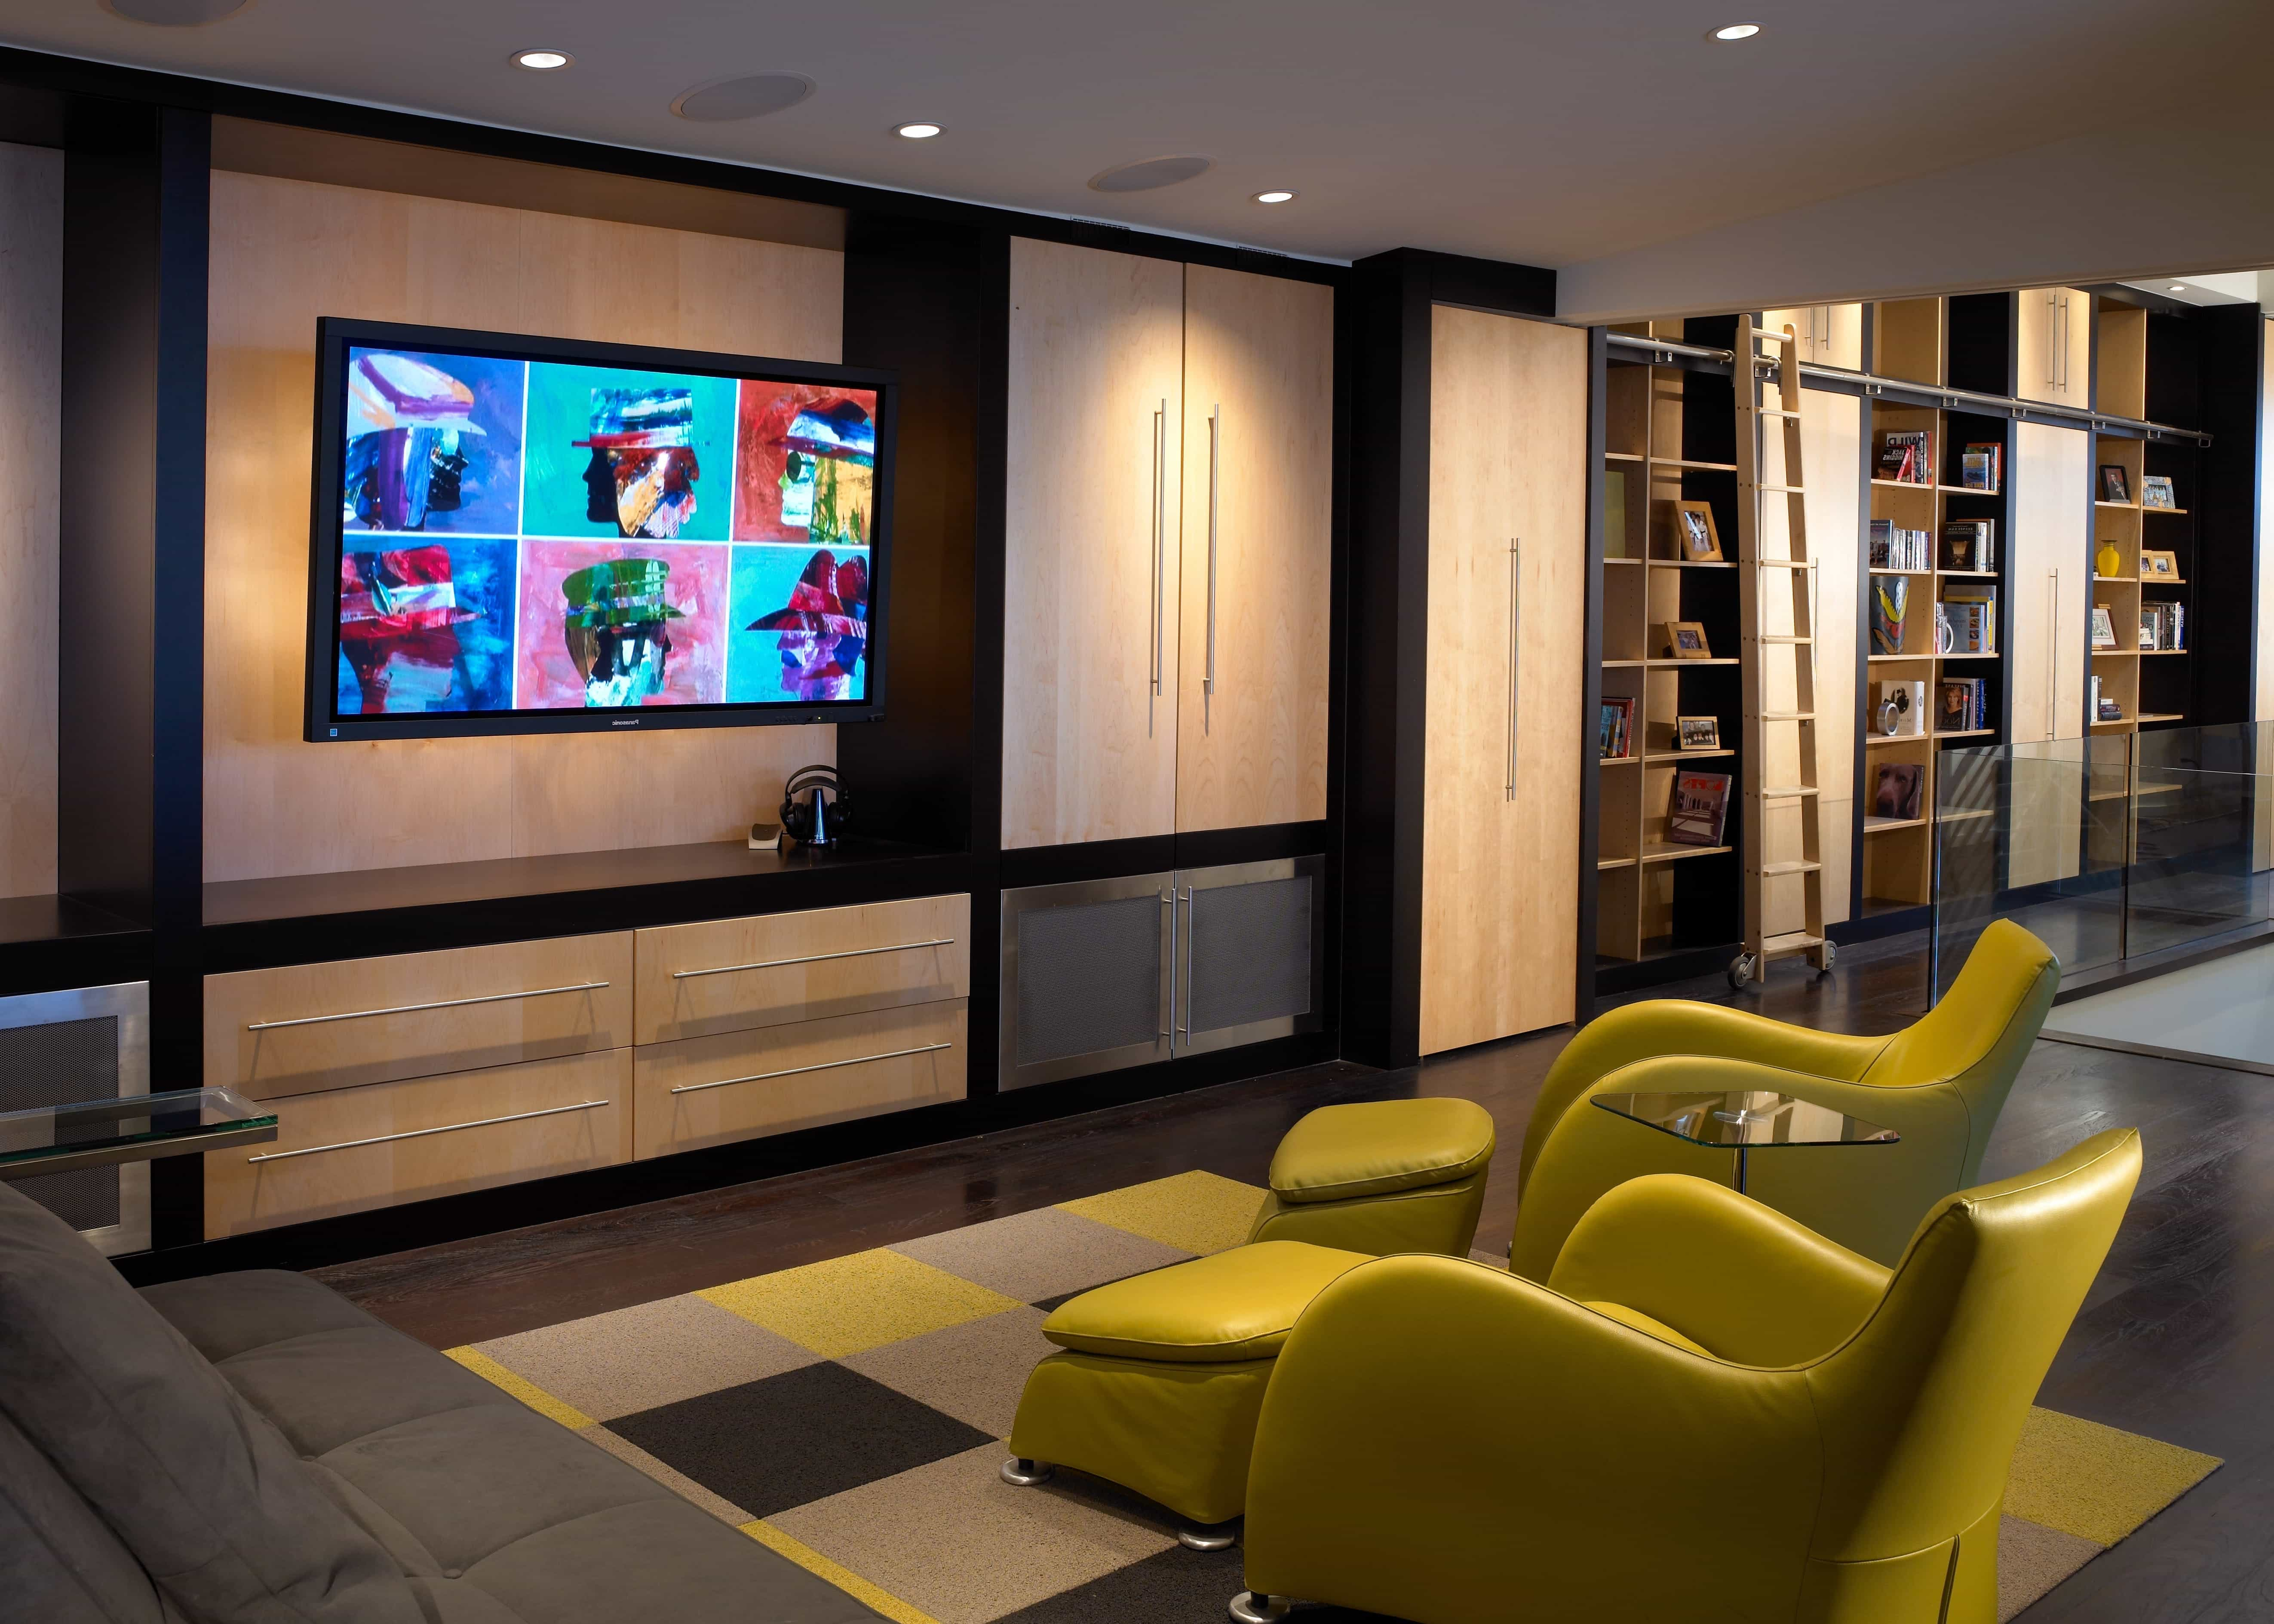 Minimalist Multimedia Home Theater And Library Interior Combo (Image 13 of 21)